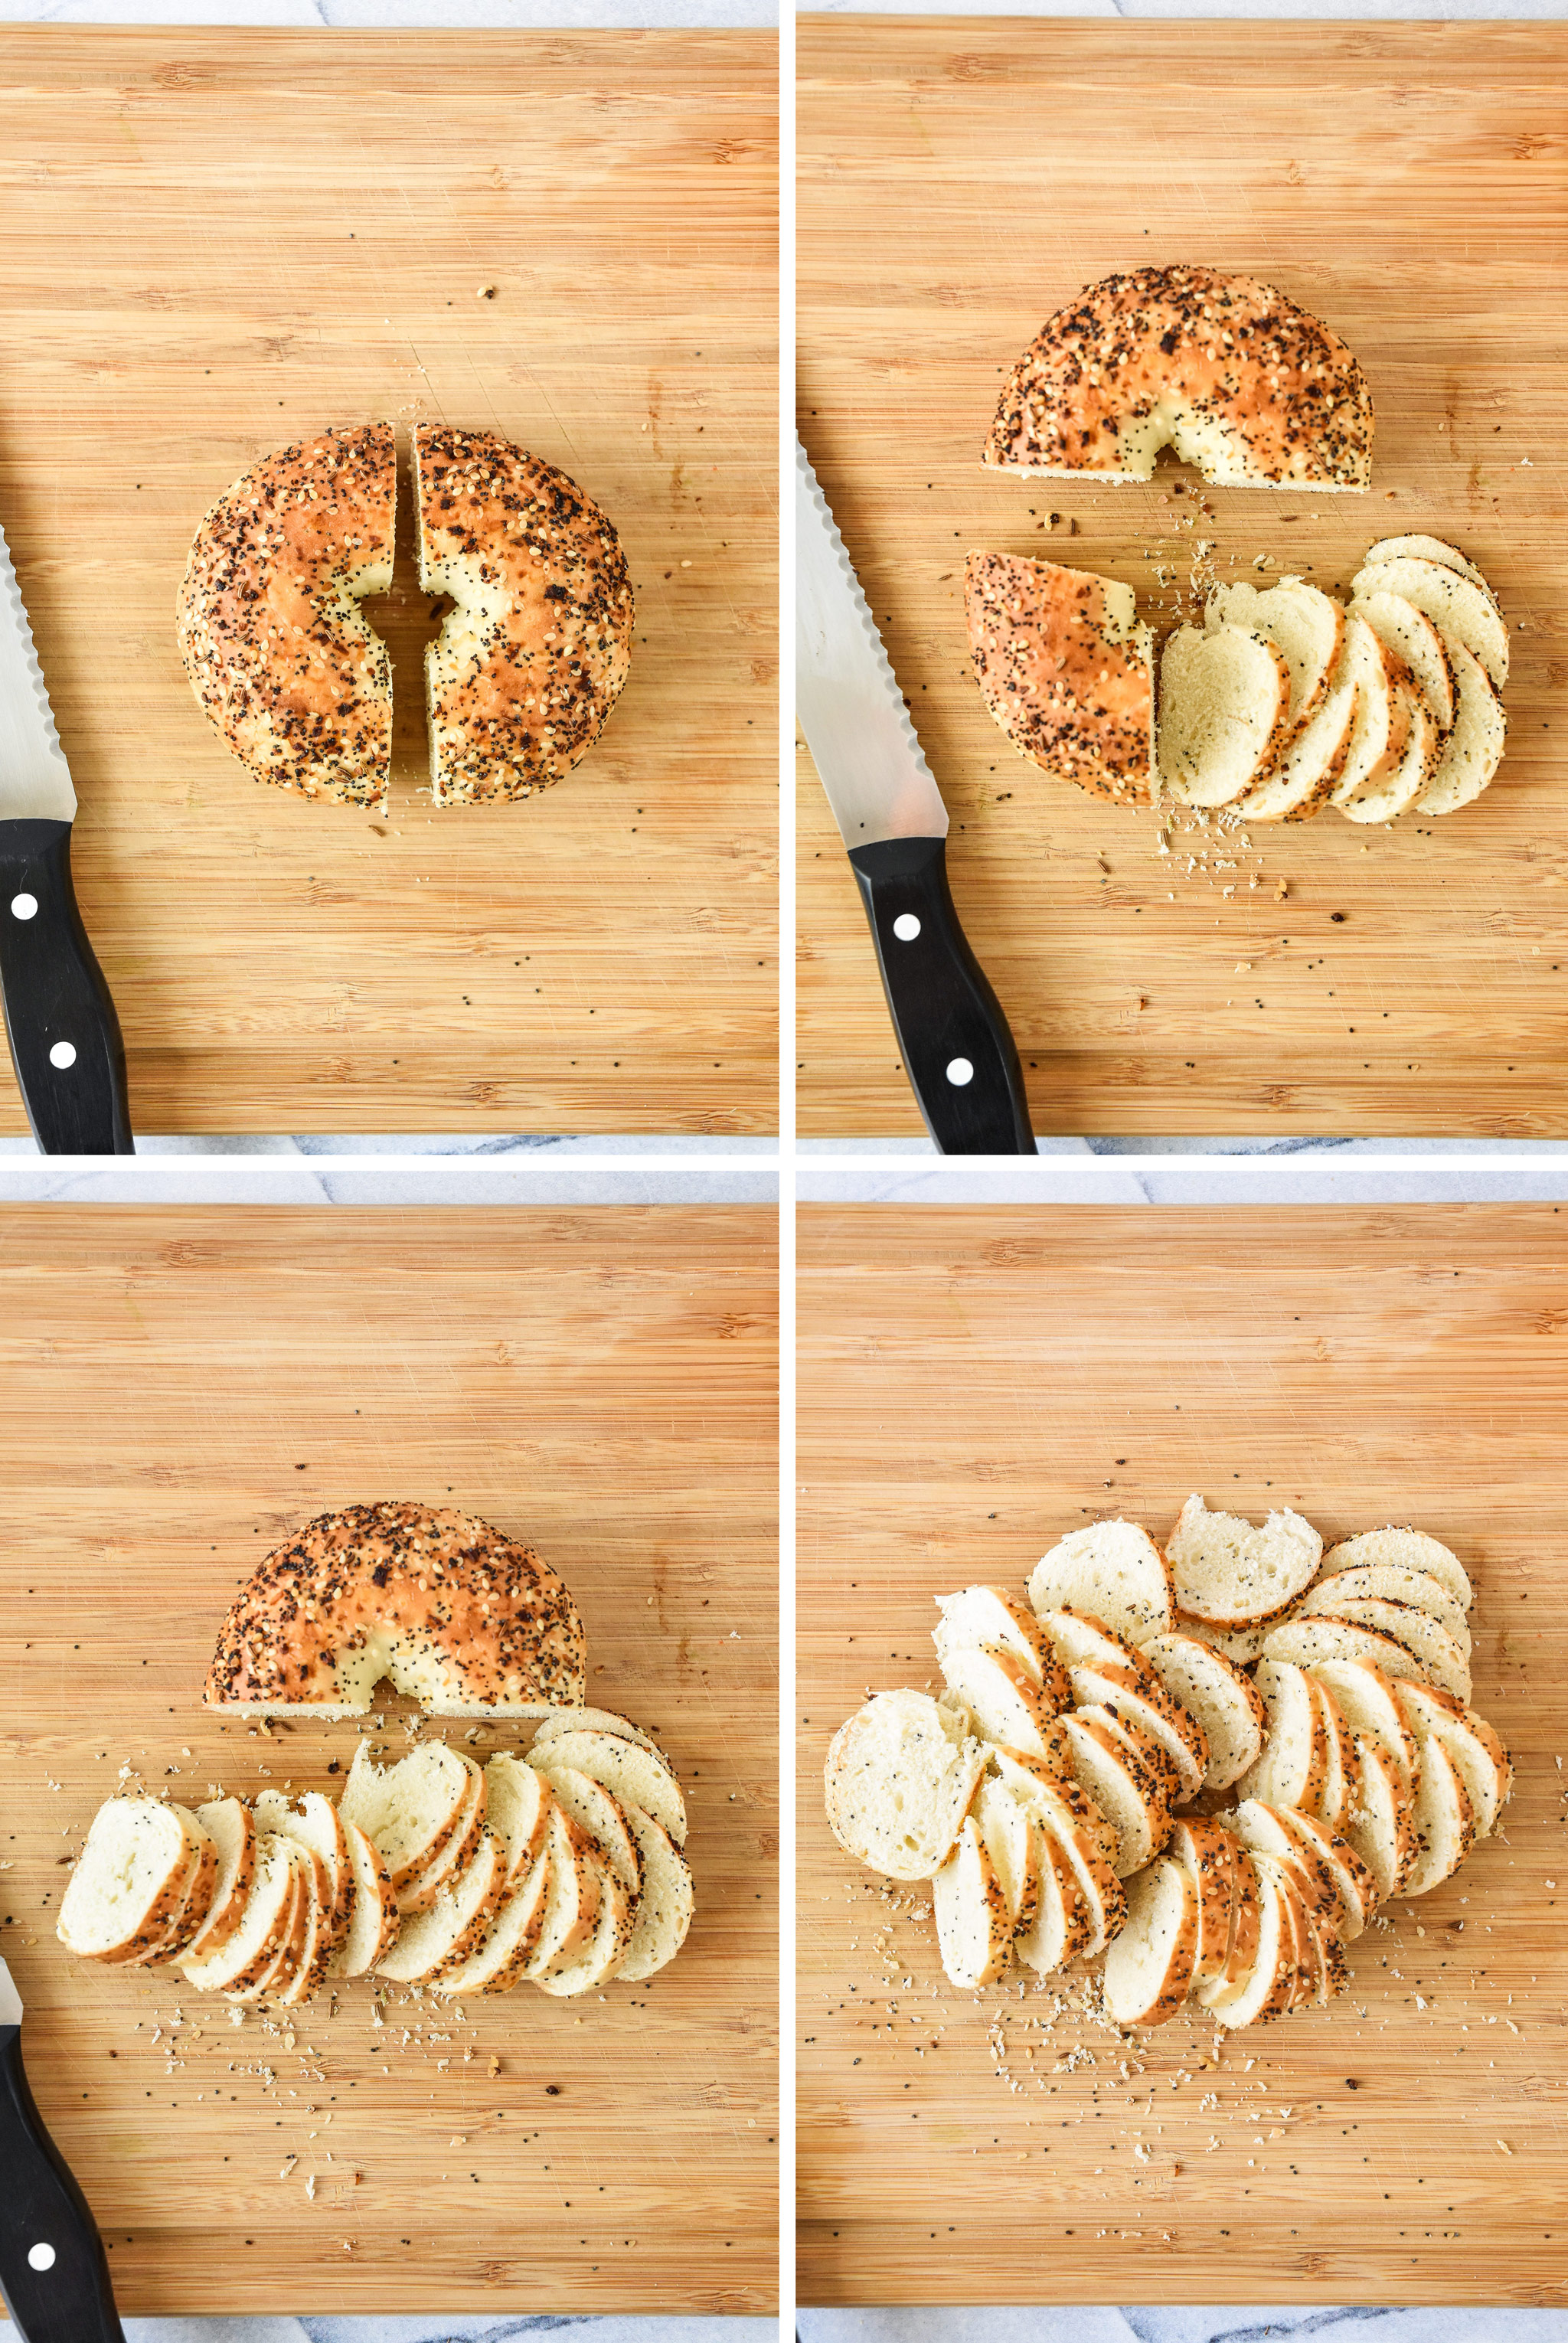 a diagram of how to cut the bagel for bagel chips.